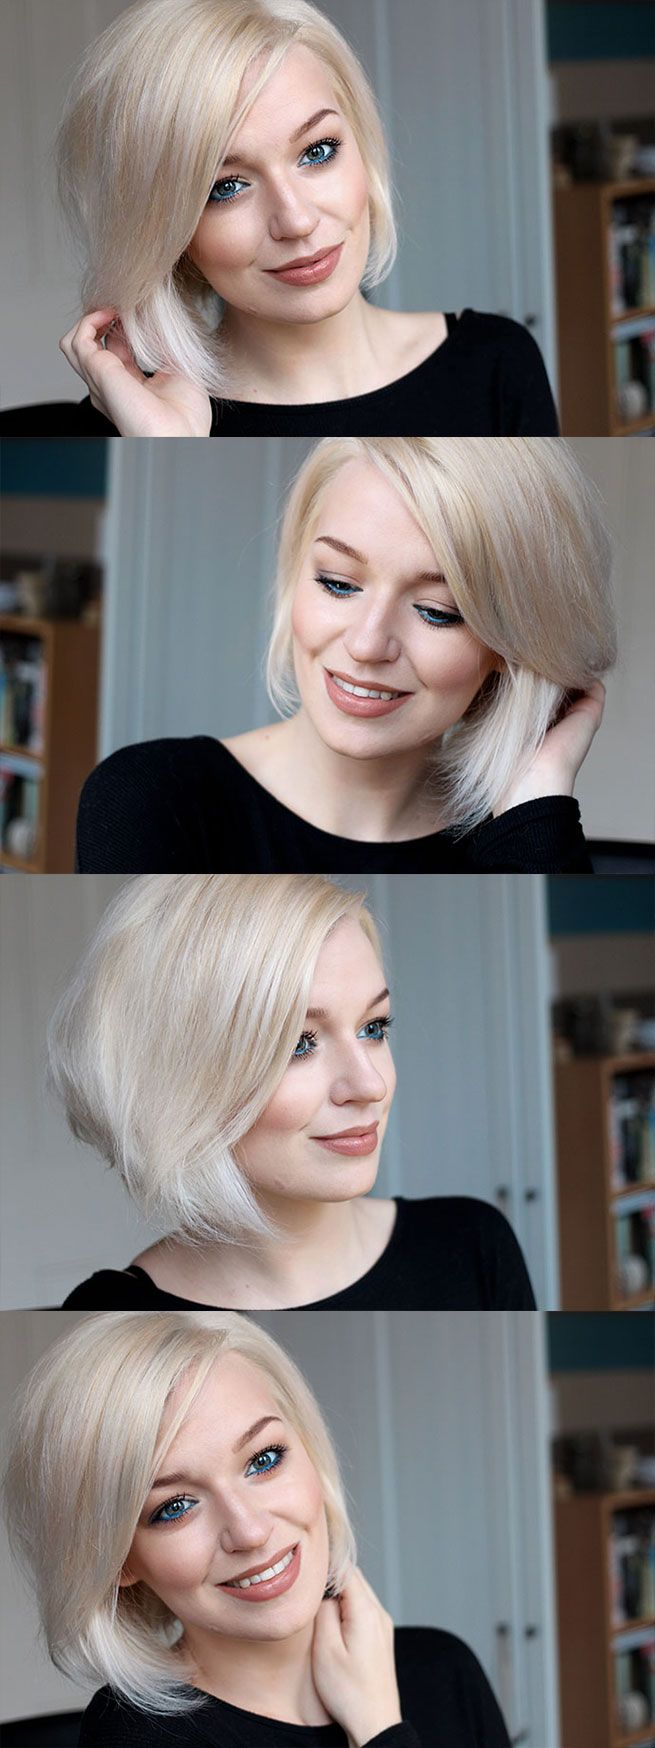 Platinum White Blonde Short Hair Zoe Newlove | AWESOME HAIR ...